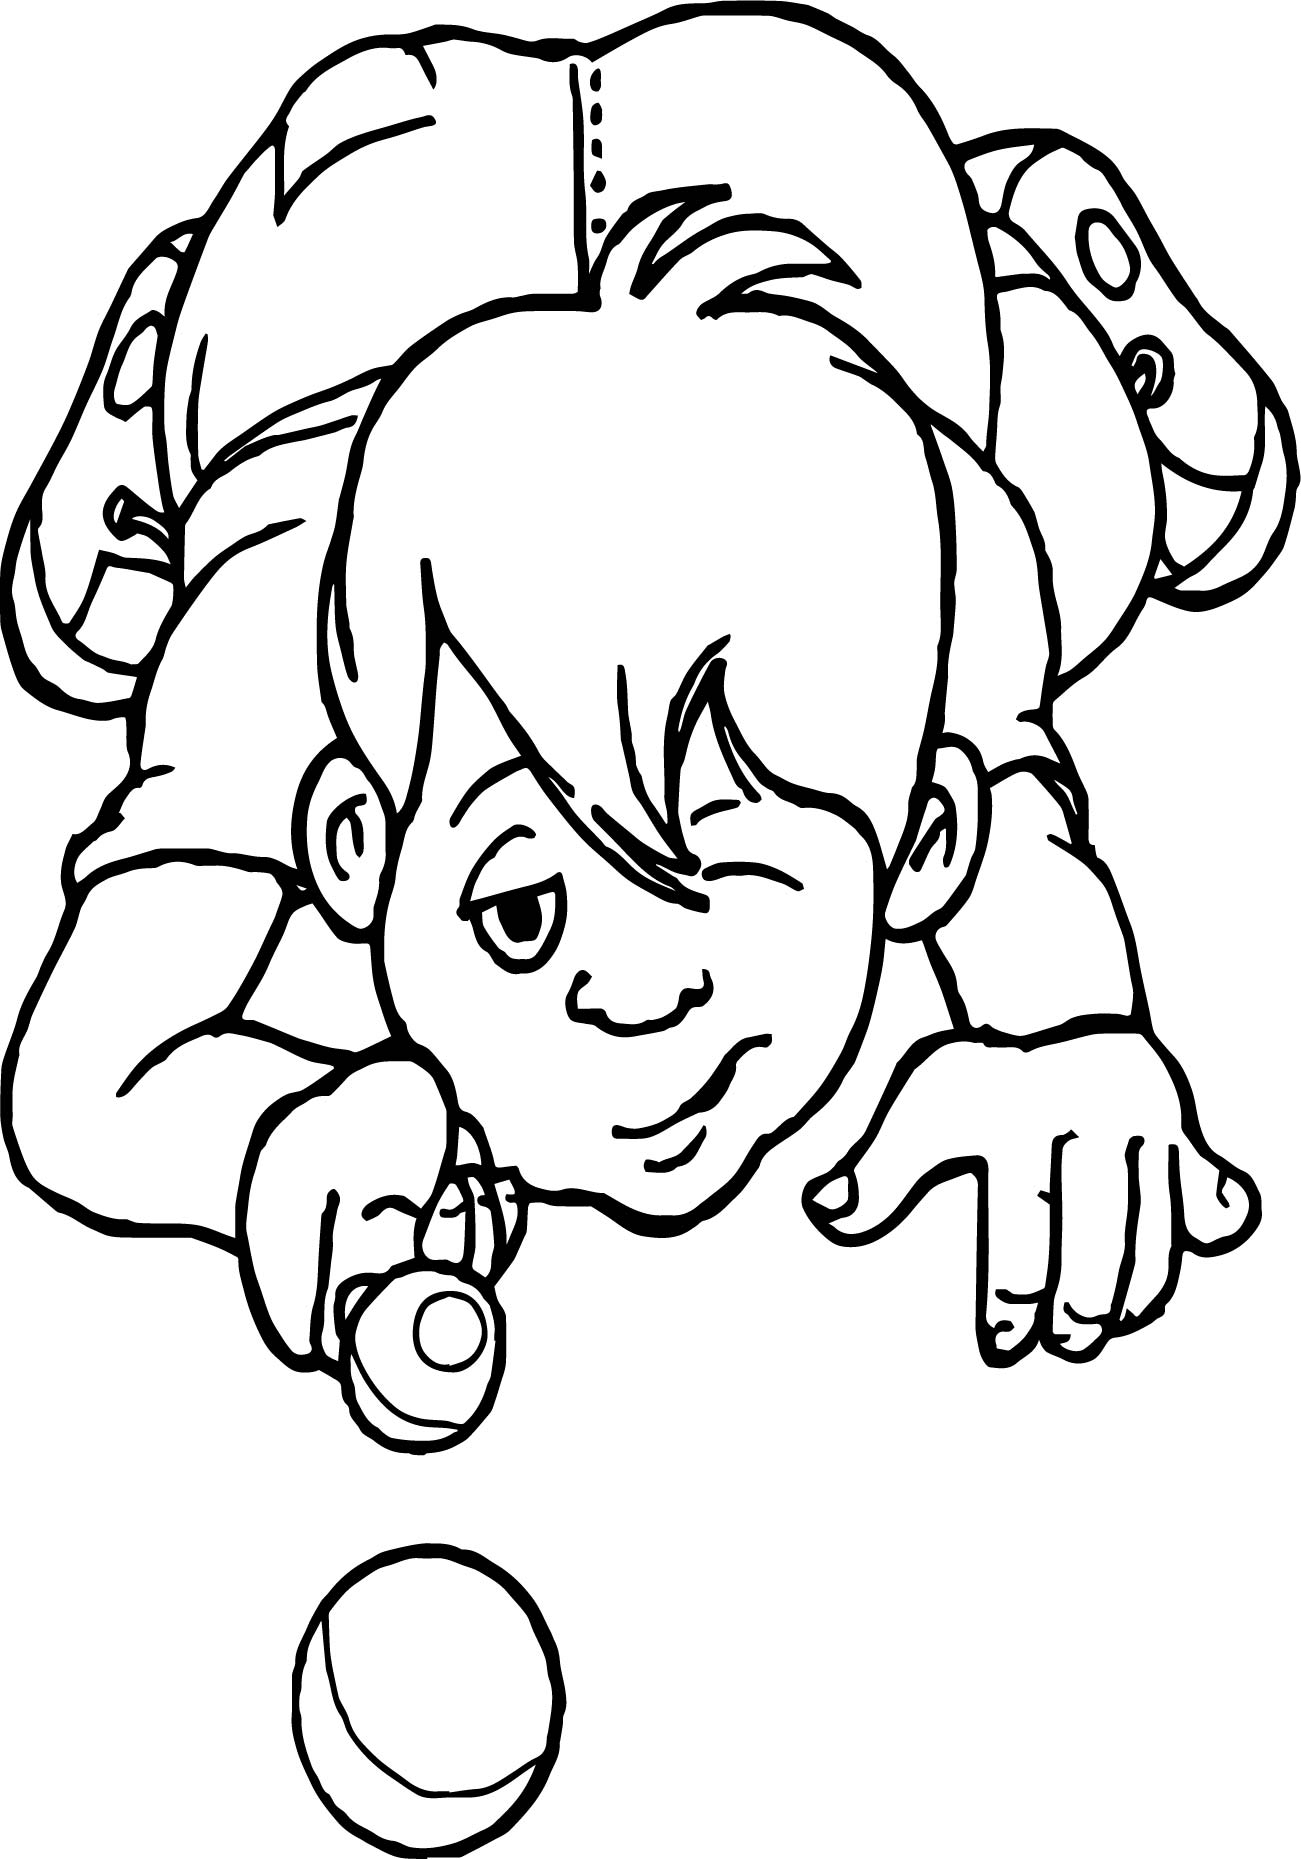 Marbles Coloring Pages Marble Coloring Page